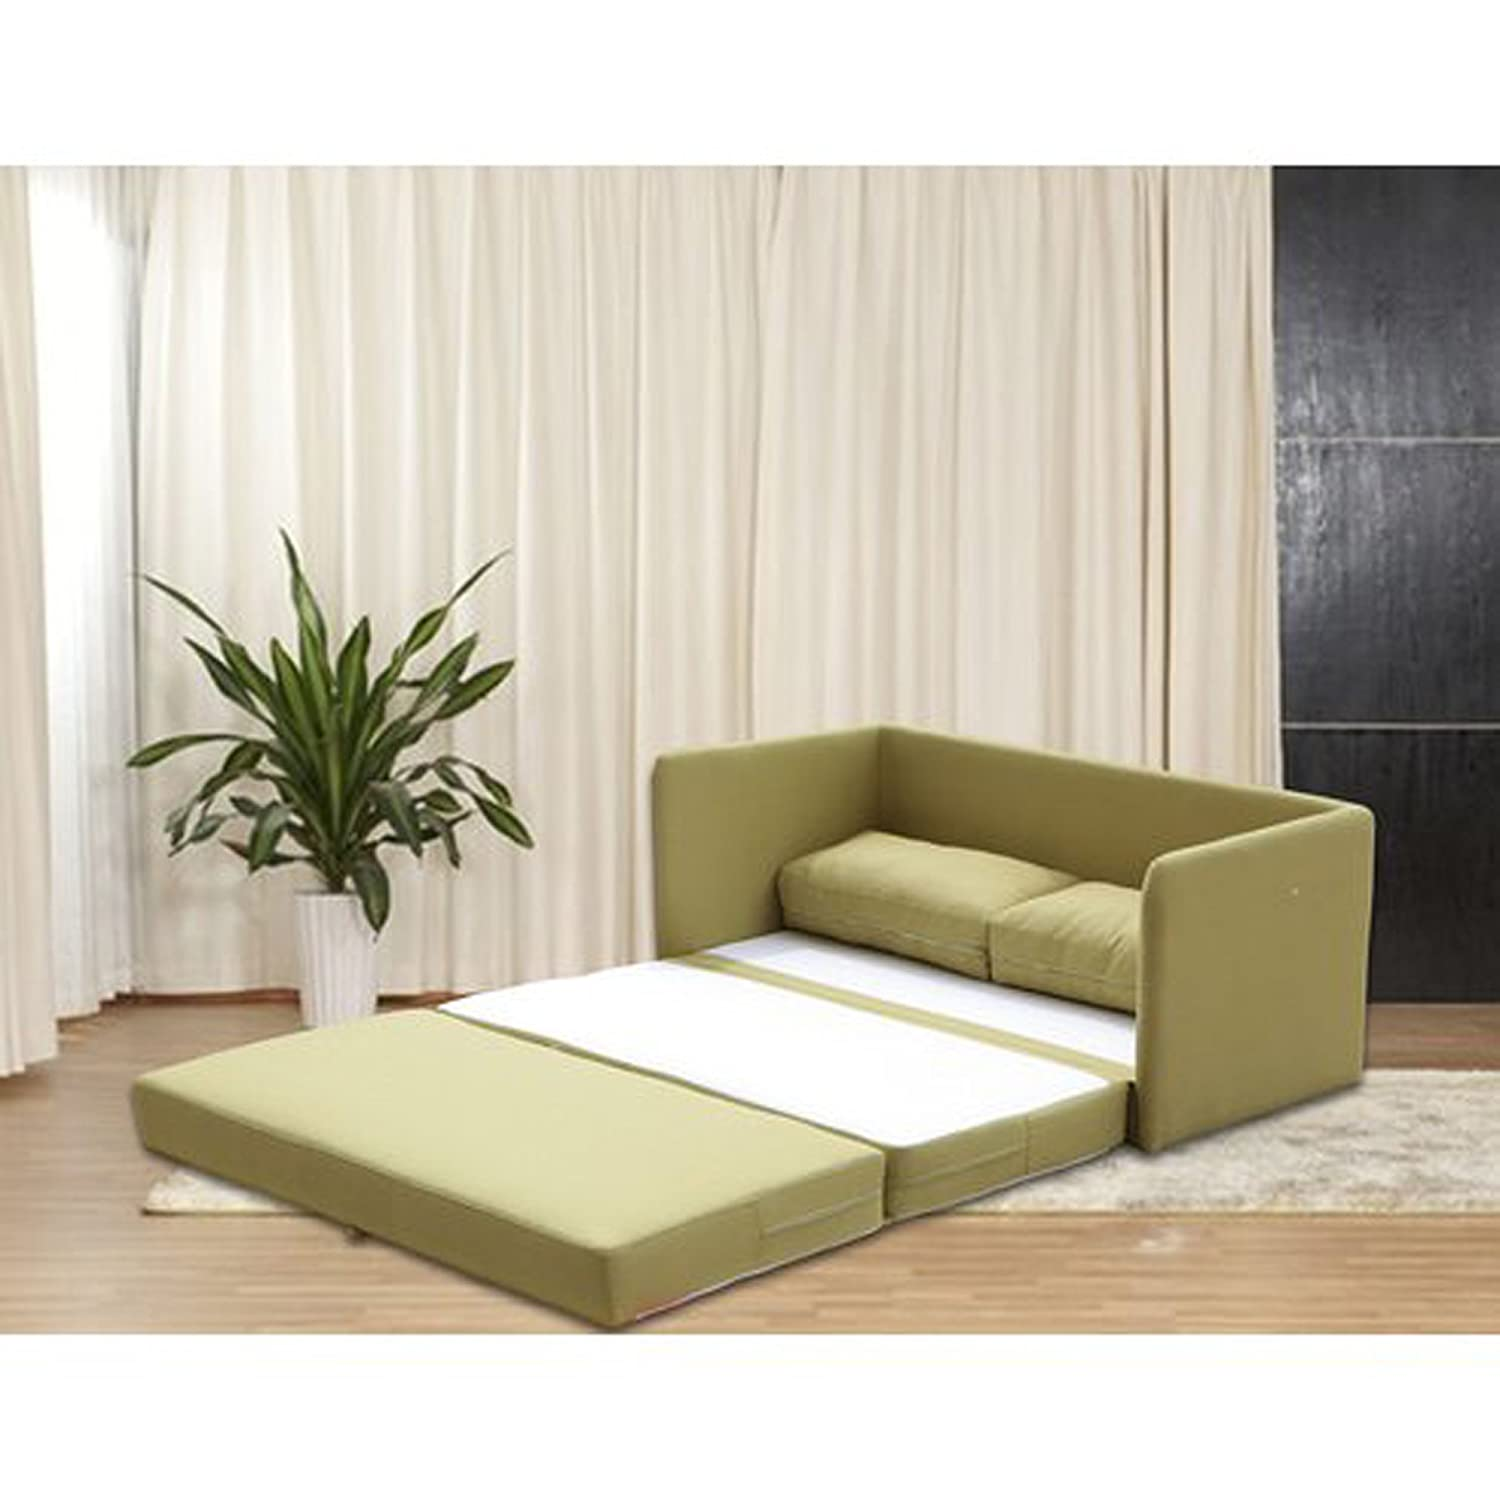 Amazon.com: Sleeper Loveseat - Convertible to Full Size ...